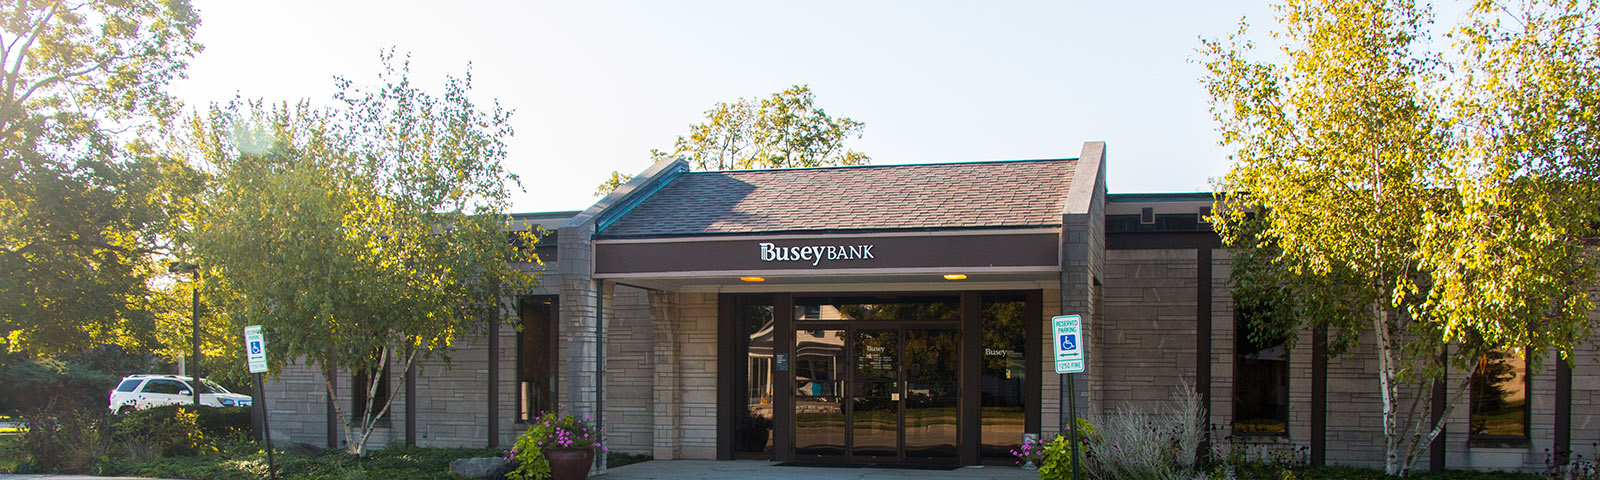 Busey Bank LeRoy location